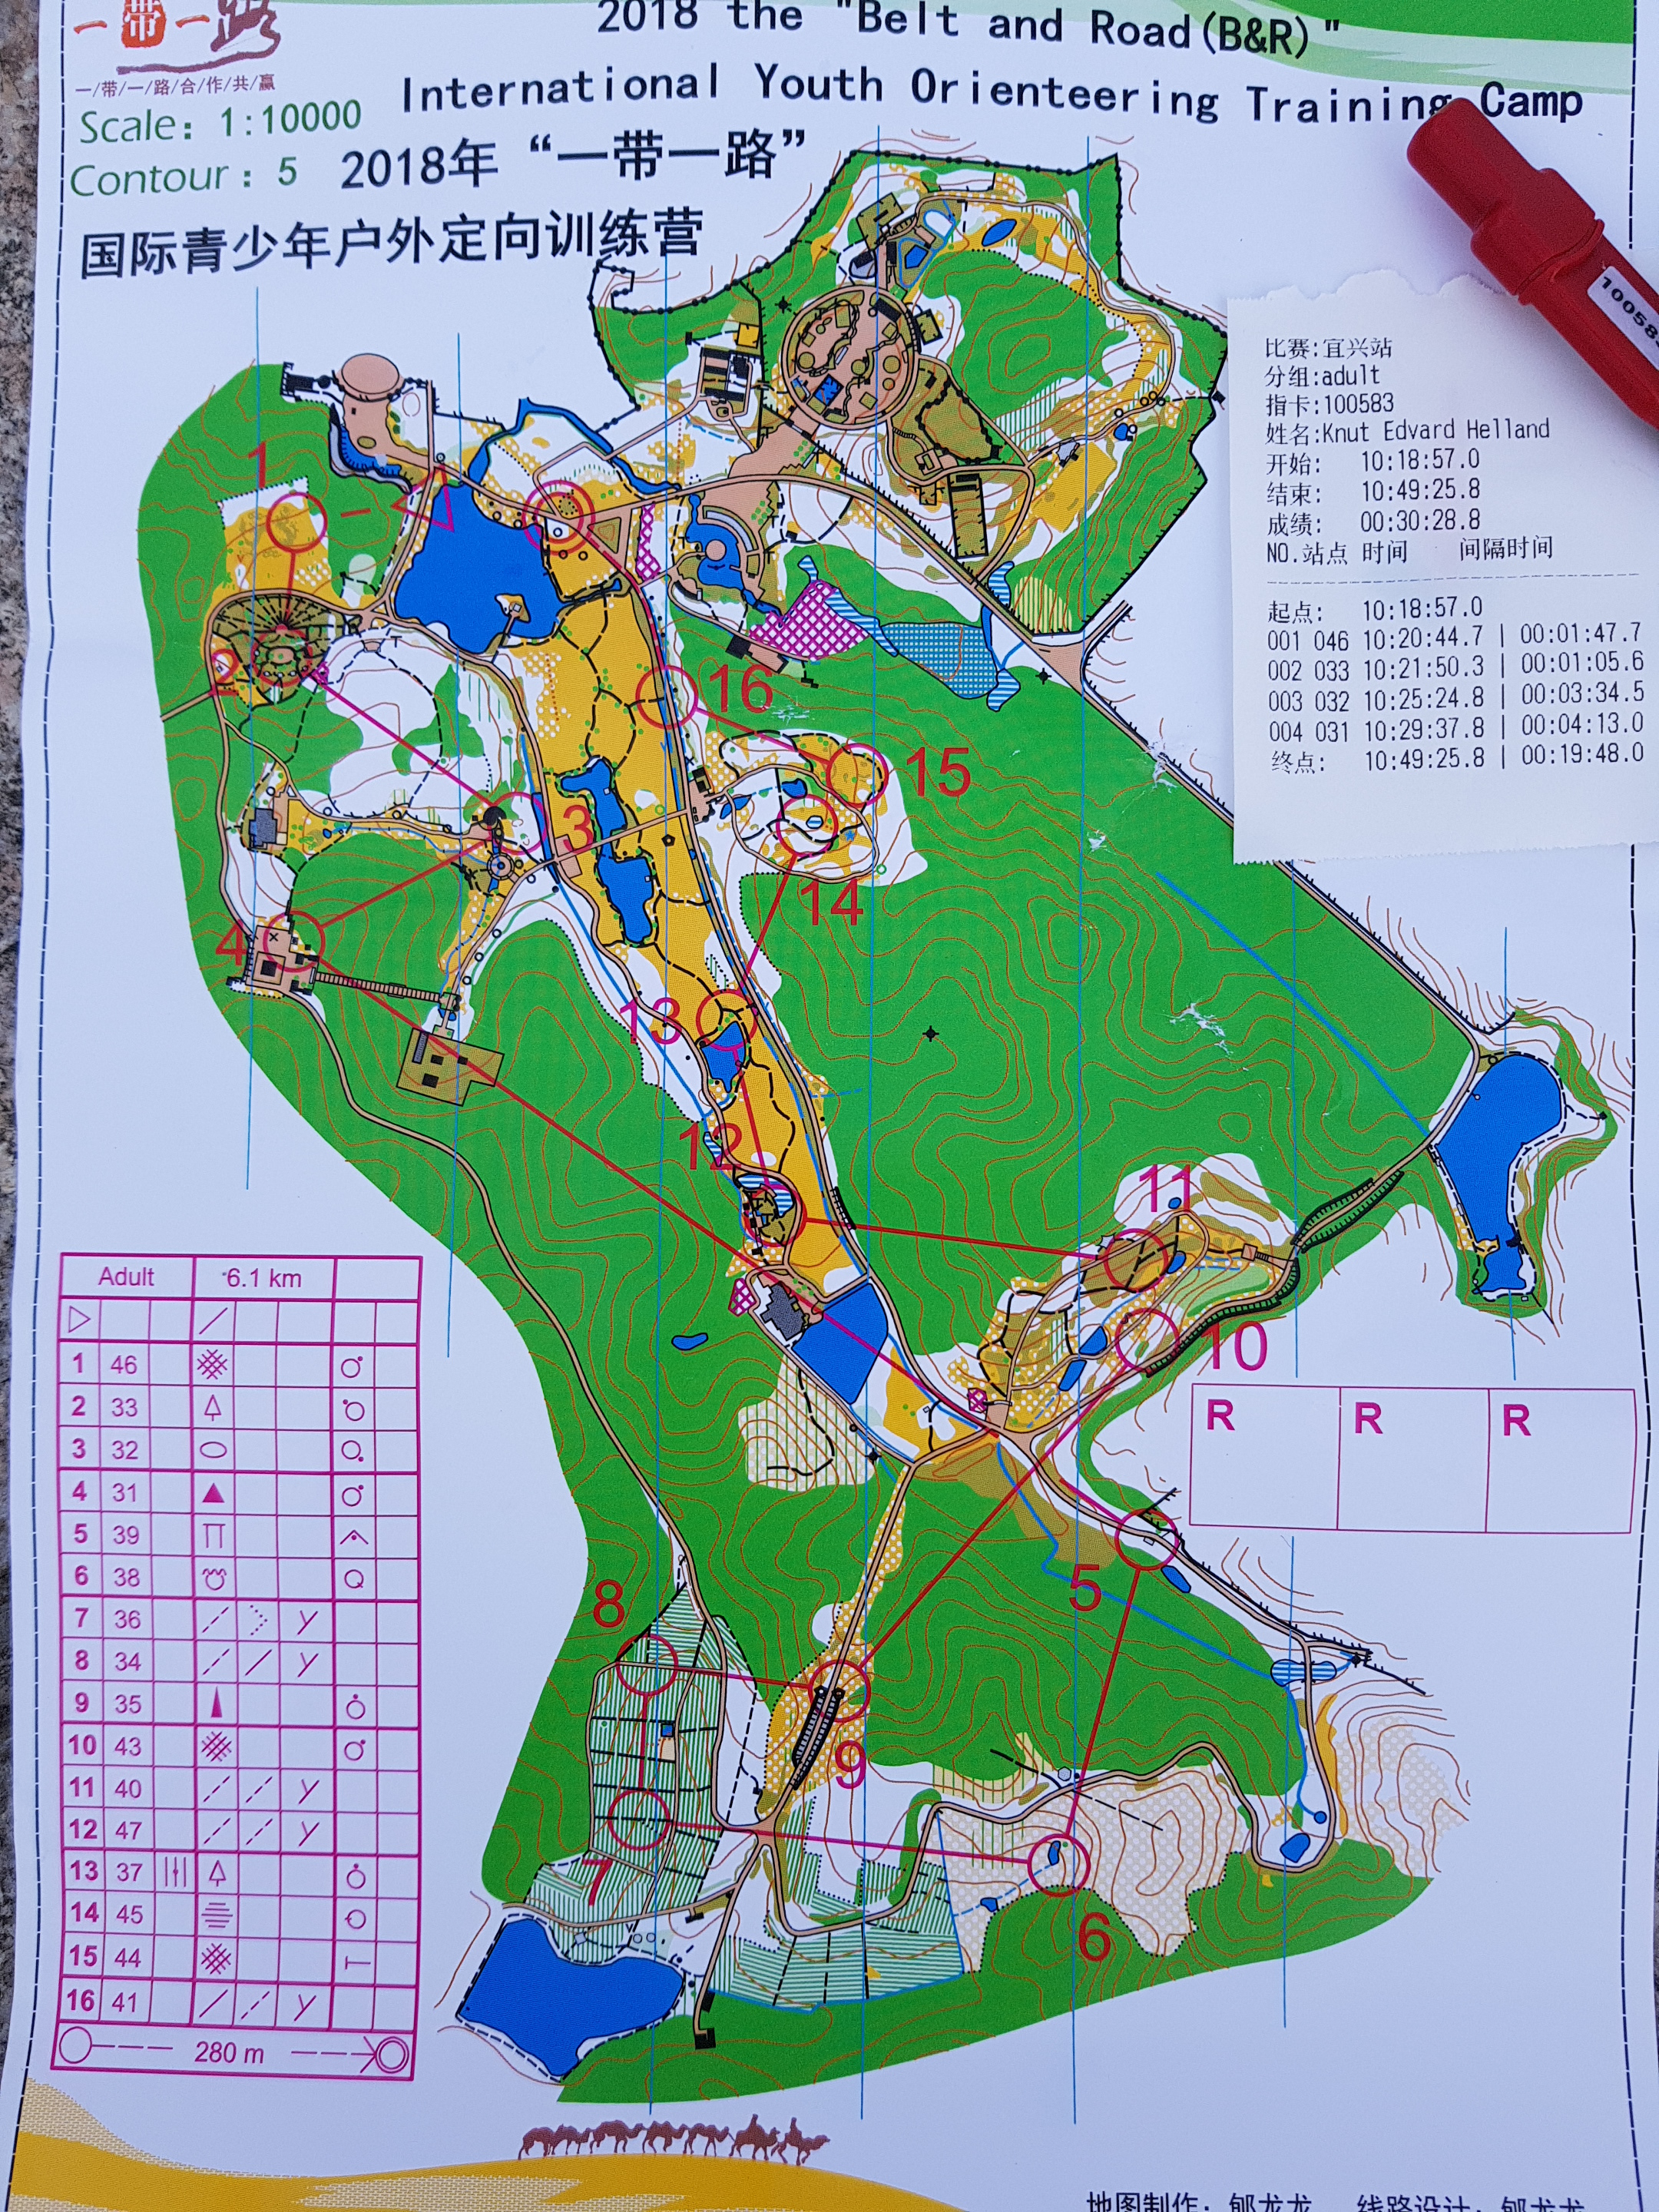 Belt and Road International Youth Orienteering Camp (30.10.2018)